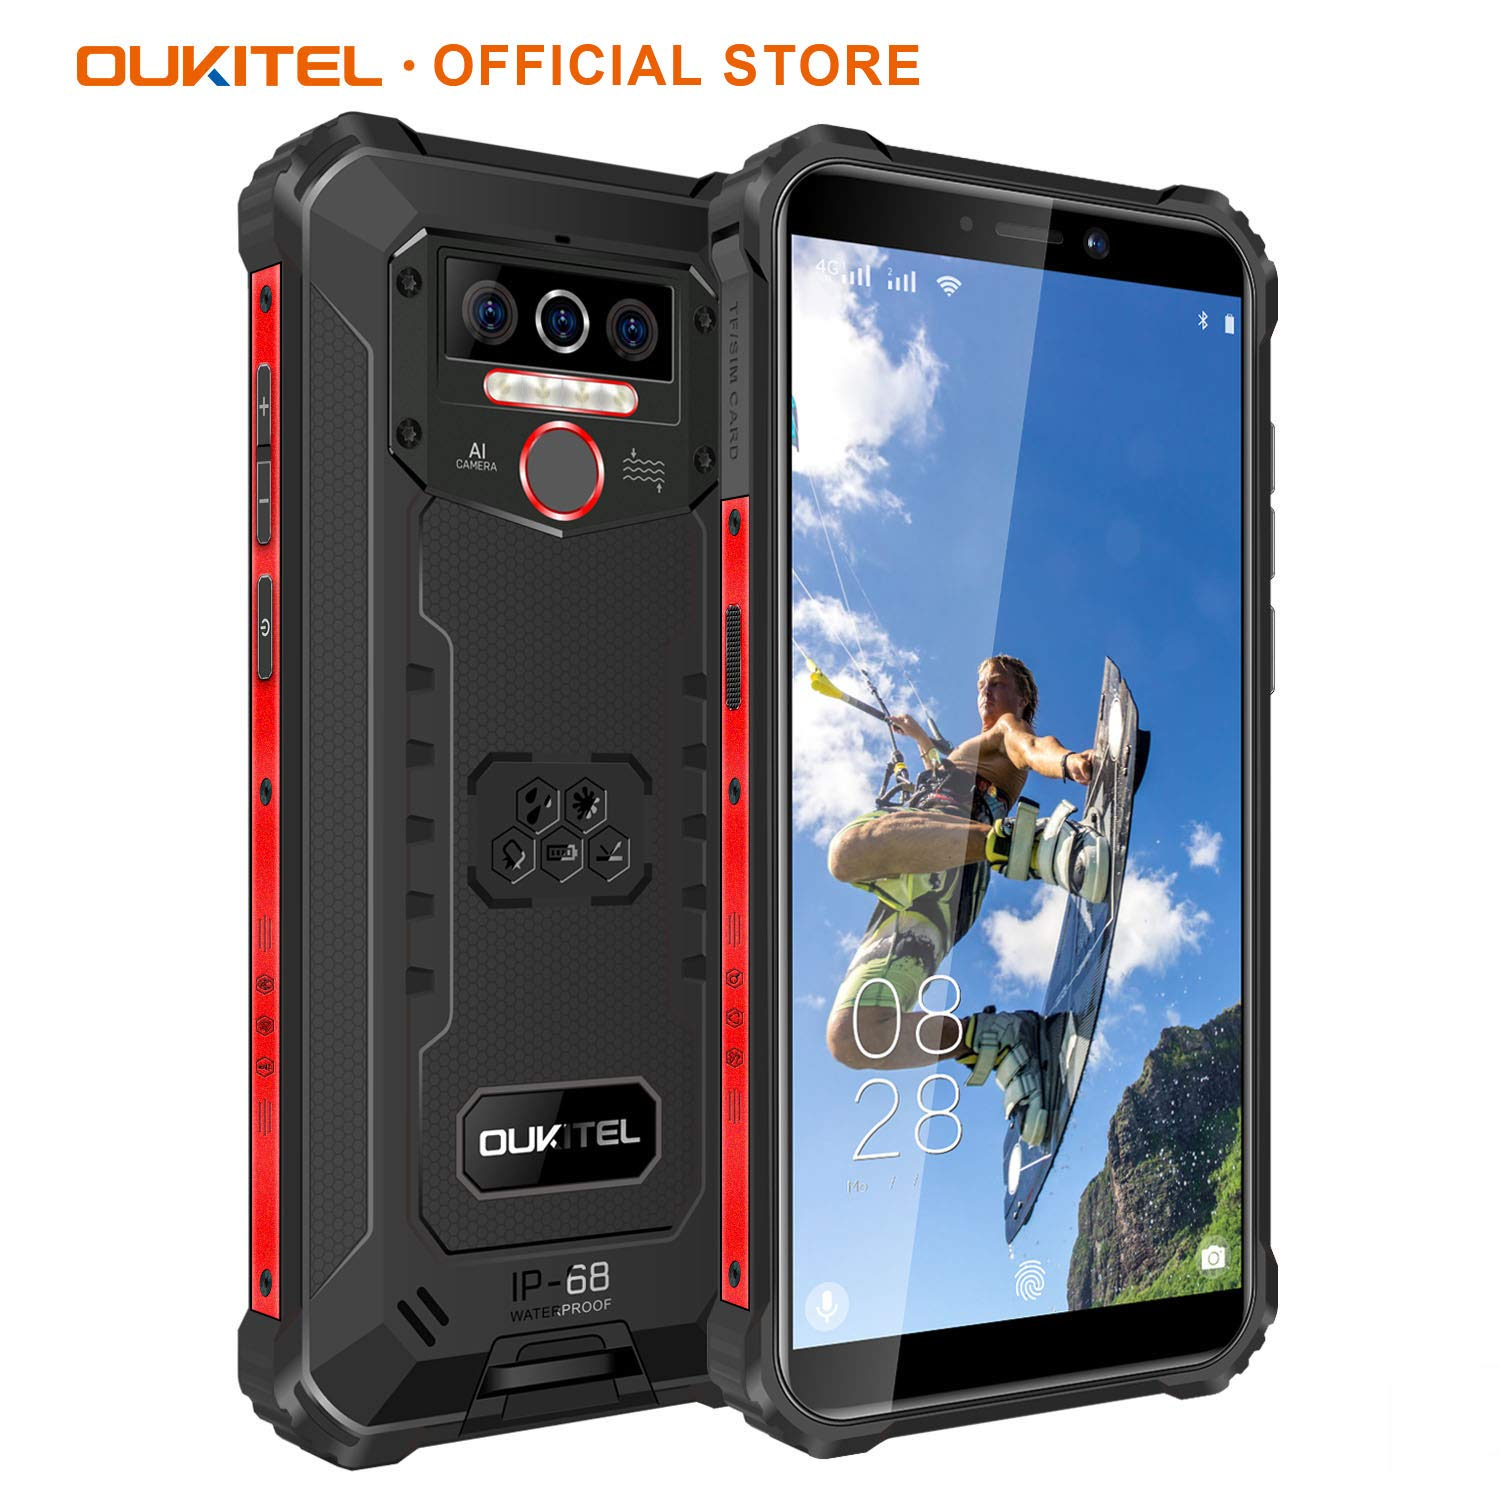 OUKITEL WP5 IP68 Waterproof/Dustproof/Shockproof 8000mAh Smartphone 5.5-inch Android 9.0 Mobile Phone 4GBRAM+32GBROM SONY13MP+5MP Dual AI Camera Face or Fingerprint Unlock One Year Warranty (Black)